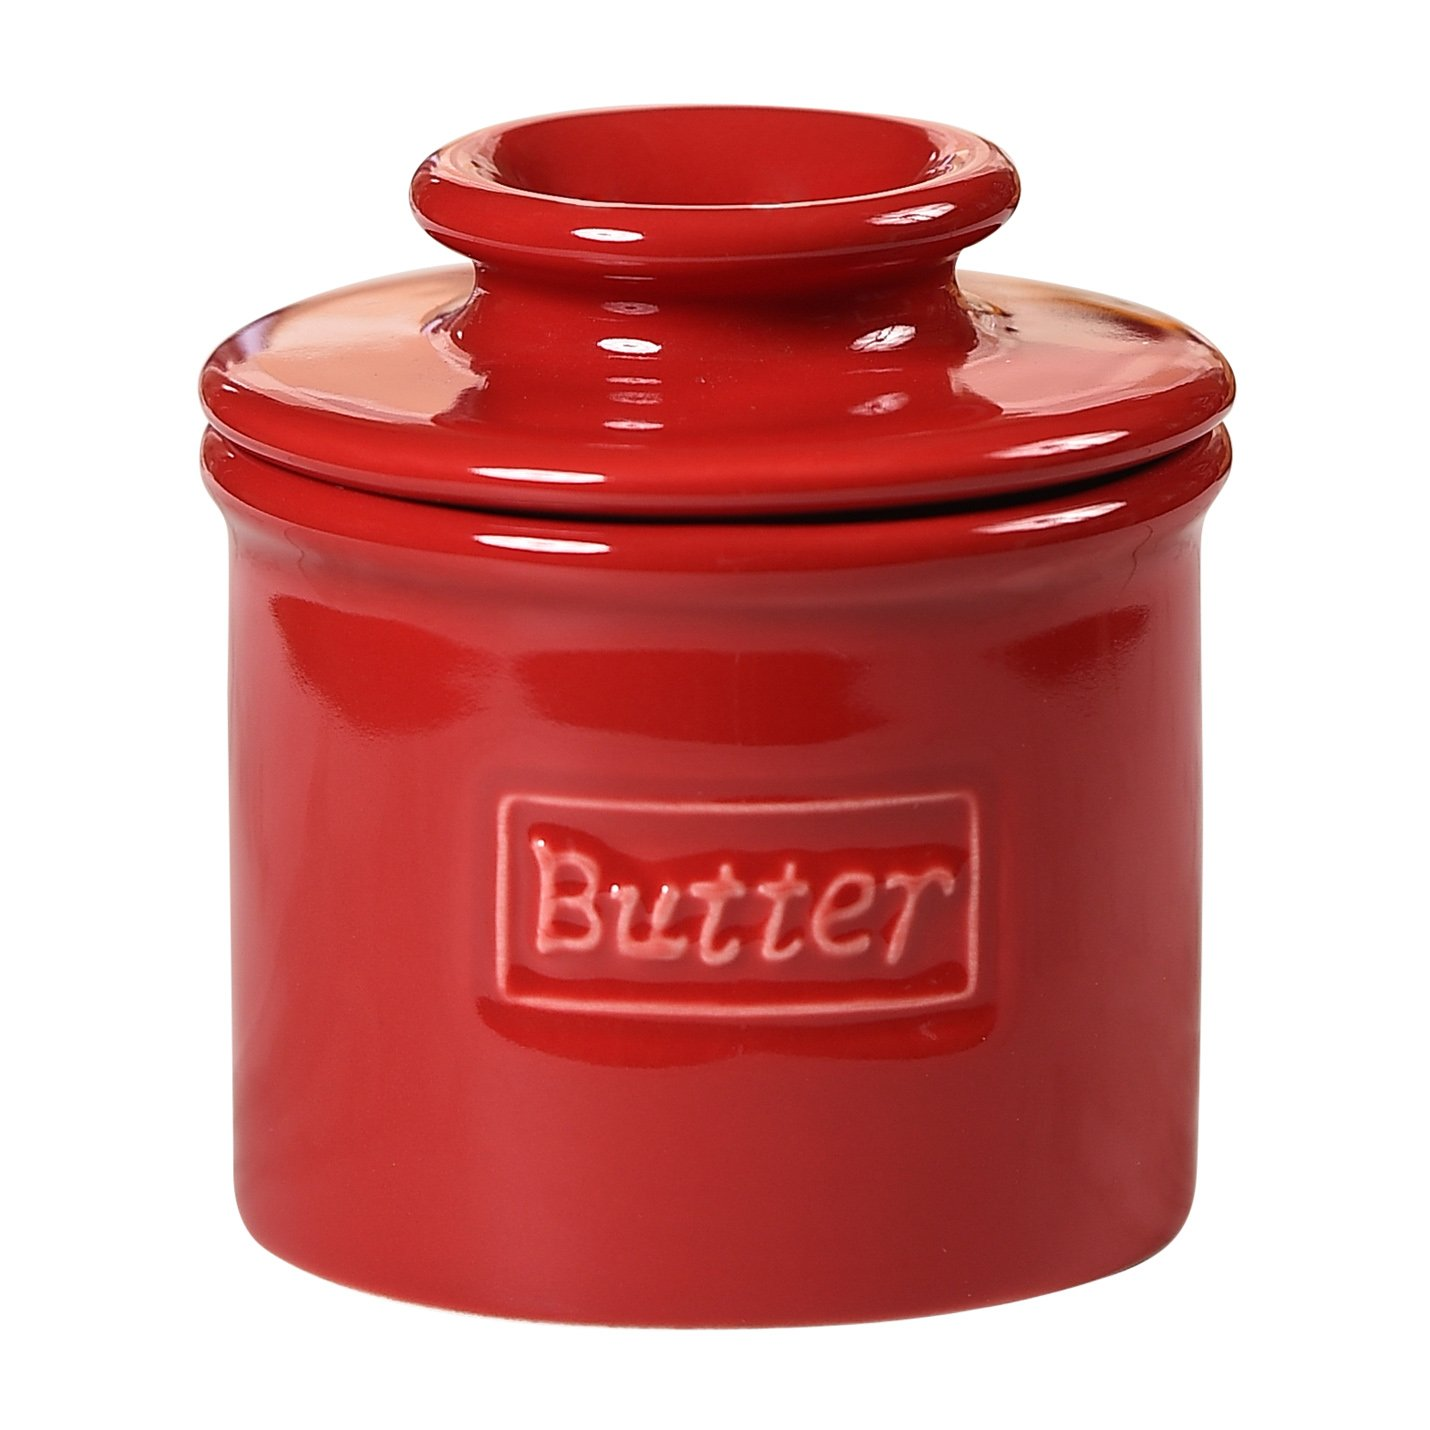 The Original Butter Bell Crock by L. Tremain, Cafe Retro Collection - Maraschino Red